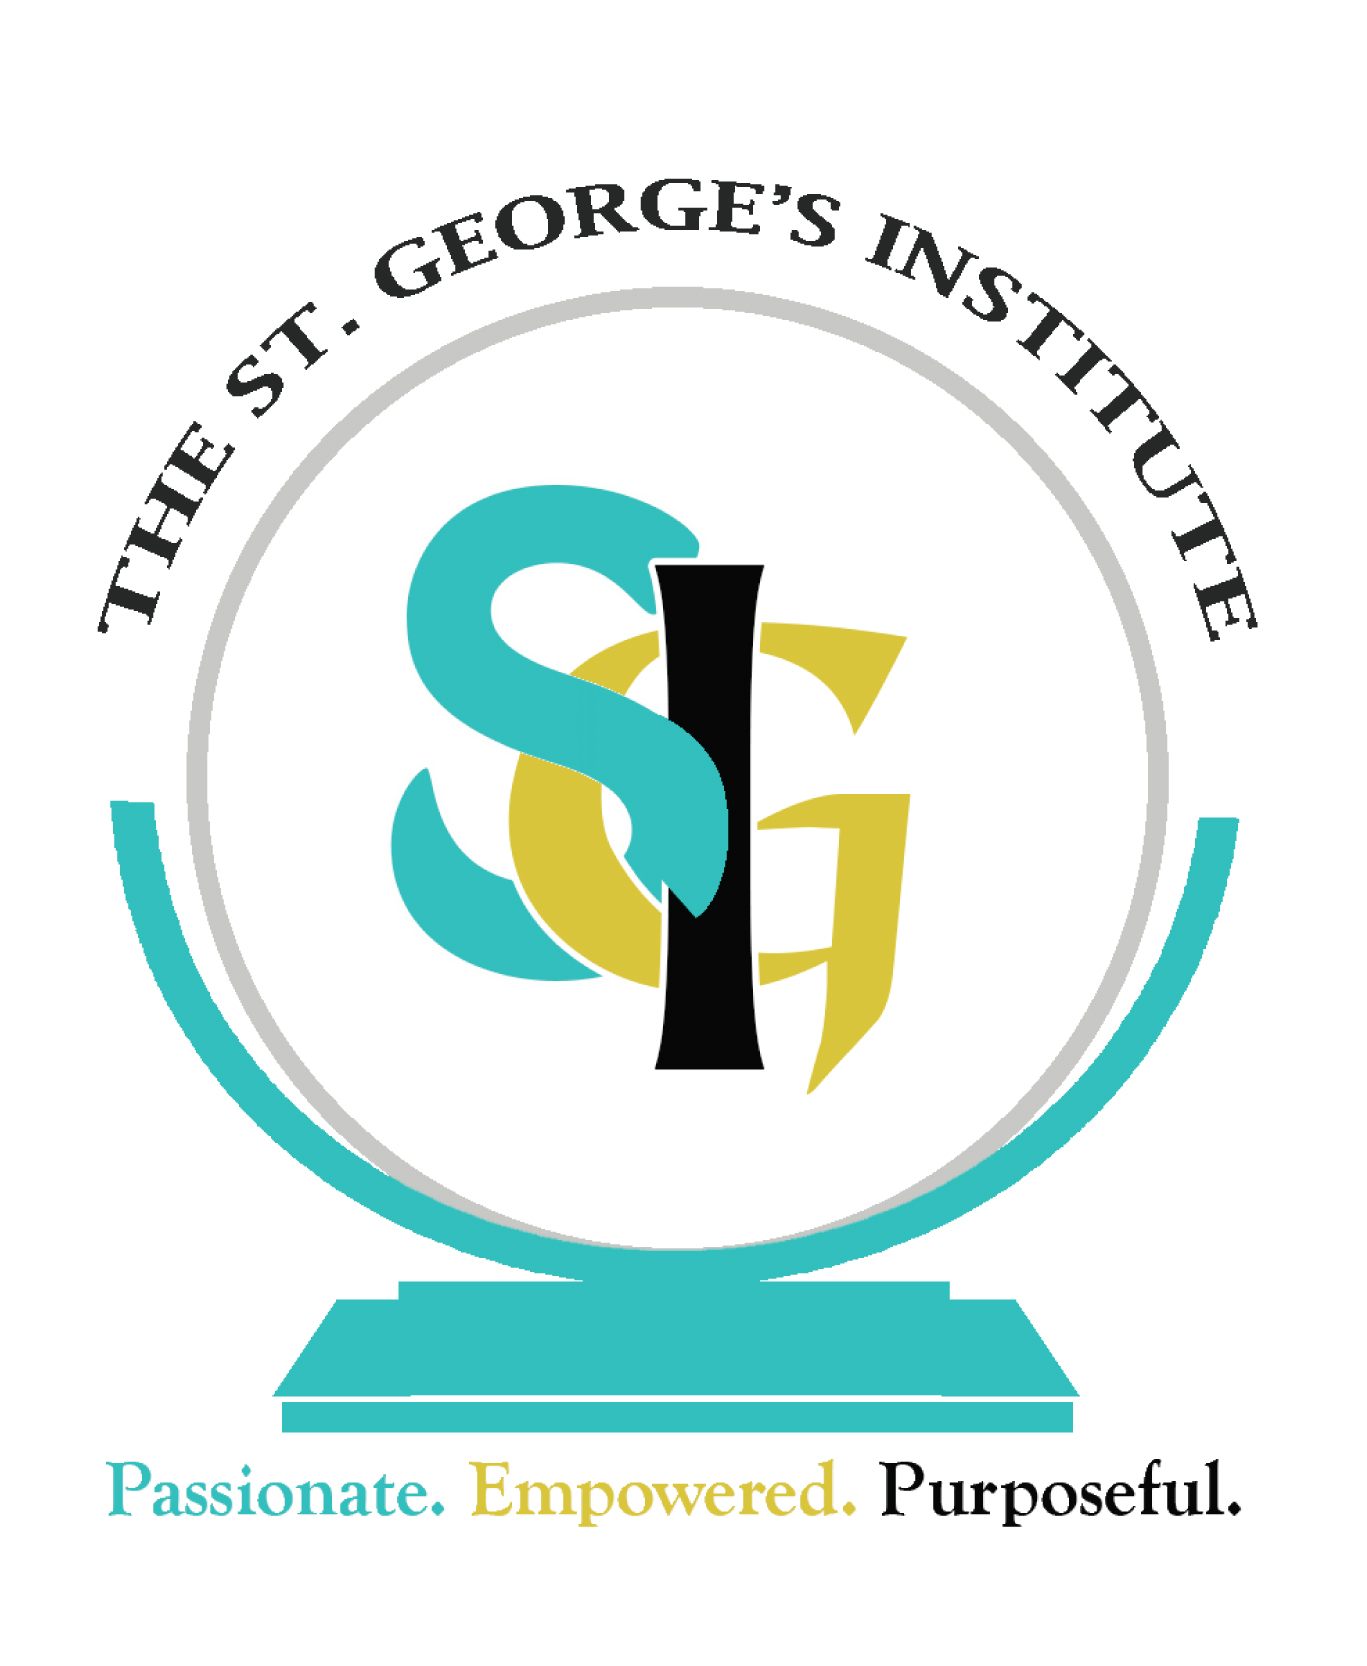 The St. George's Institute in Grenada